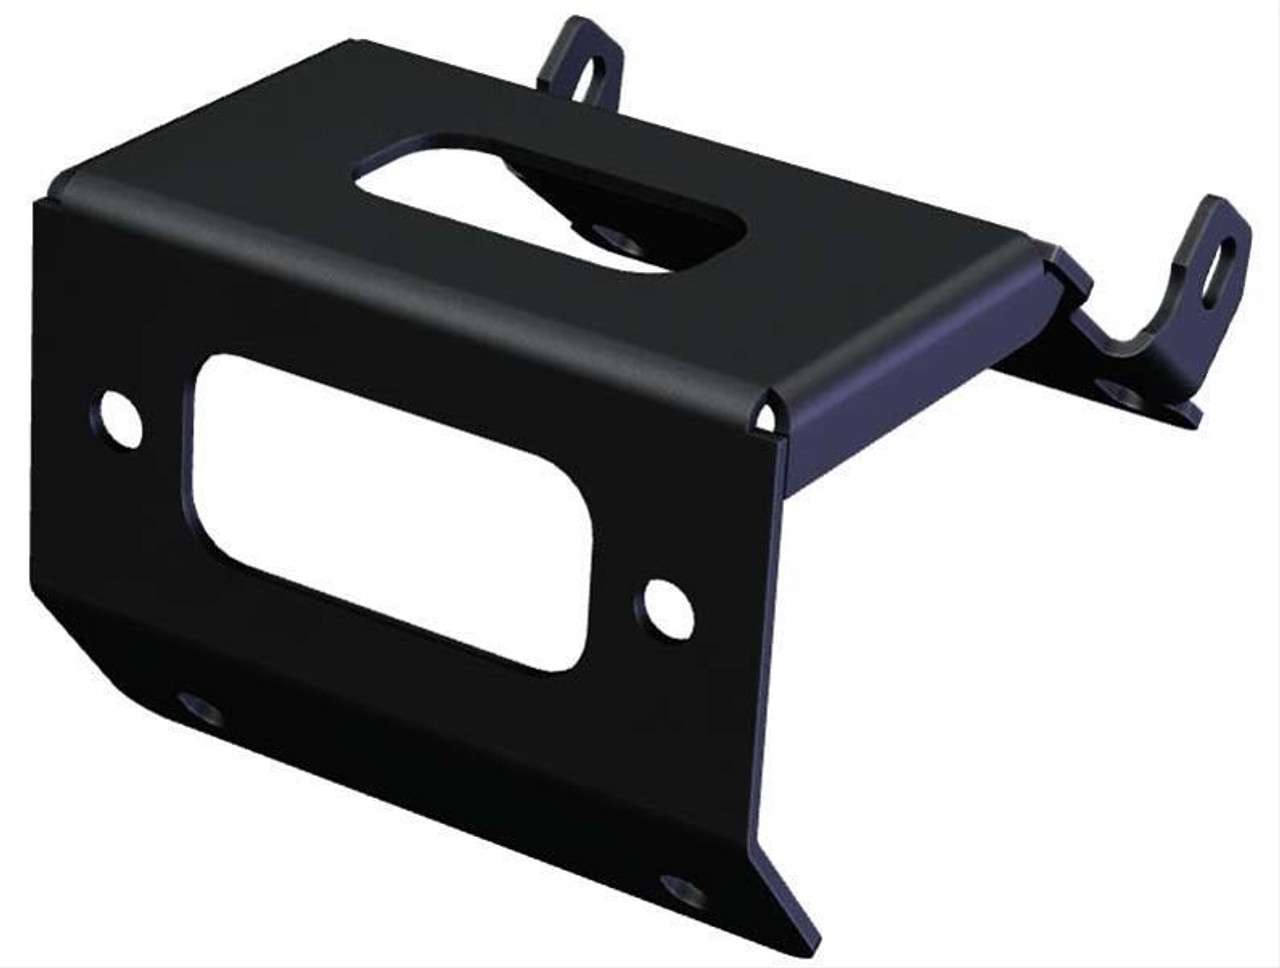 KFI Products 100880 Winch Mount